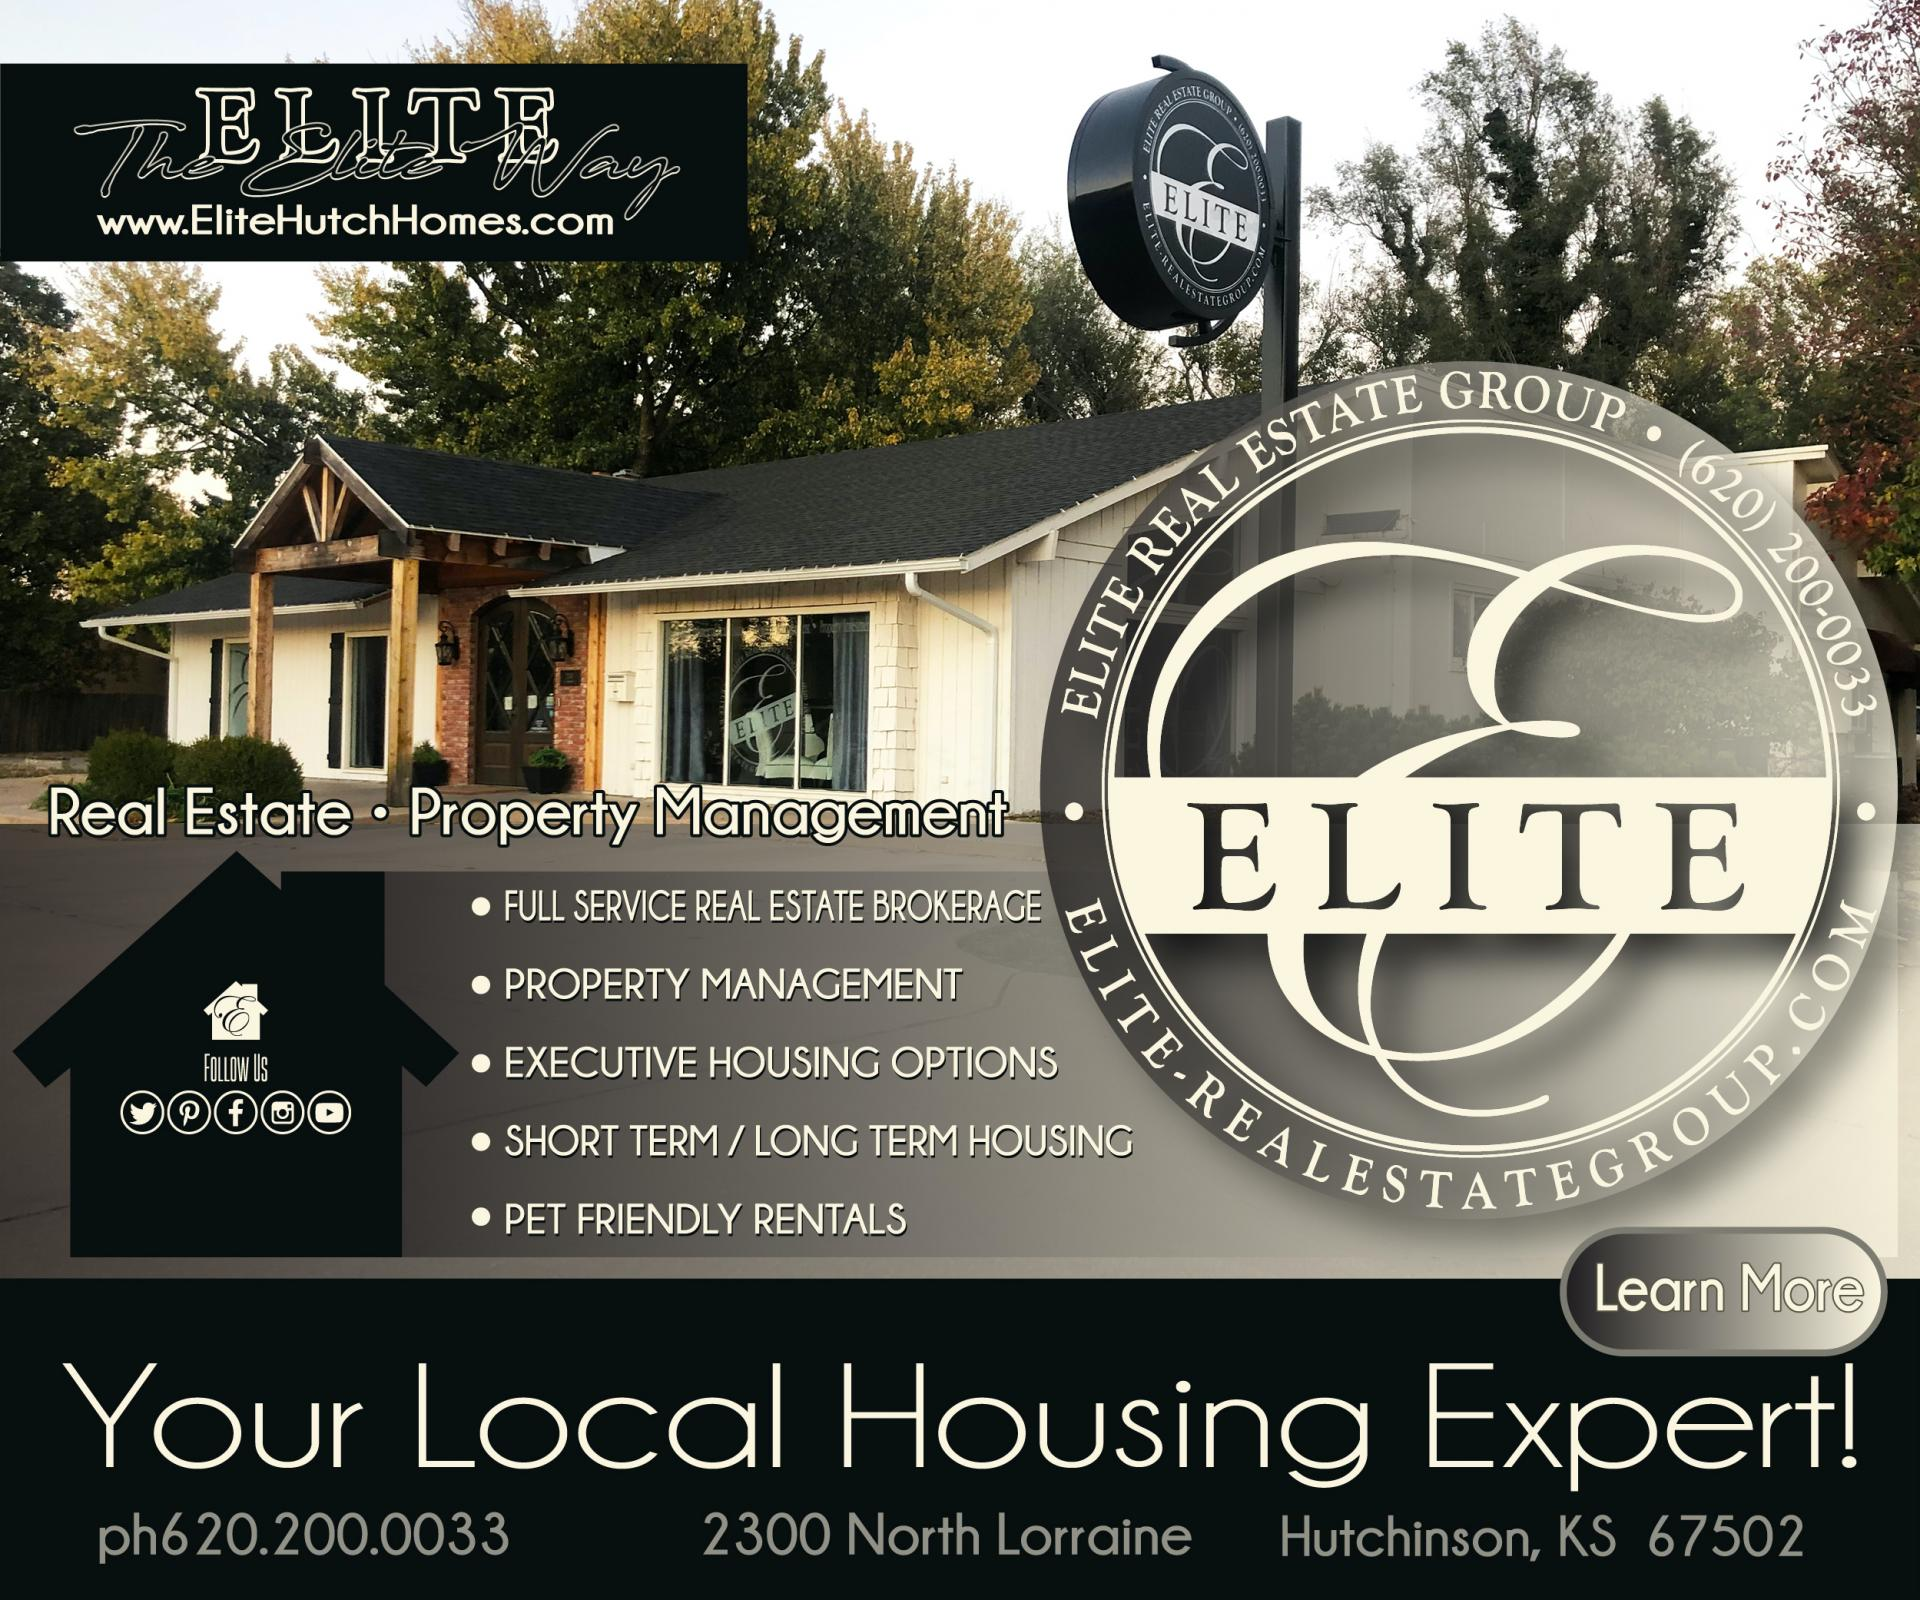 Elite-Real-Estate_ad